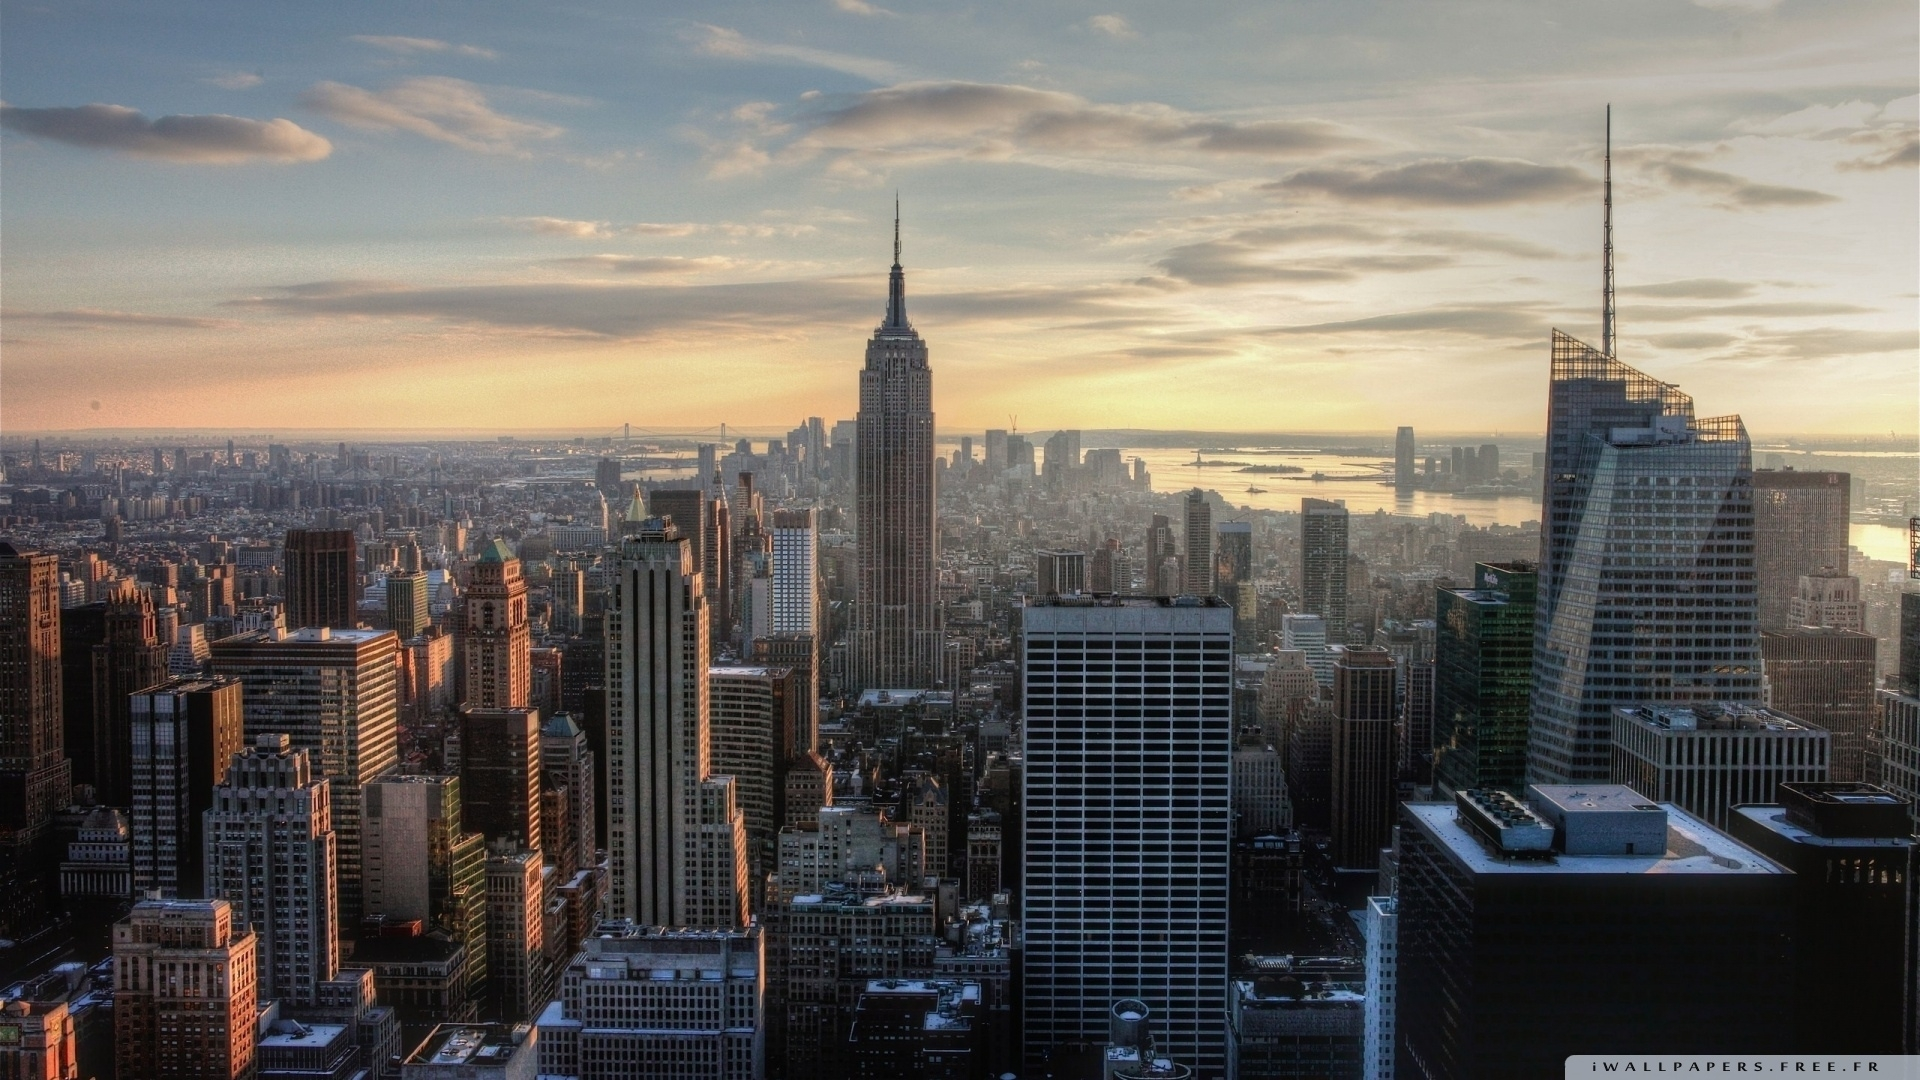 aerial view of empire state building-wallpaper-1920x1080 - 10 000